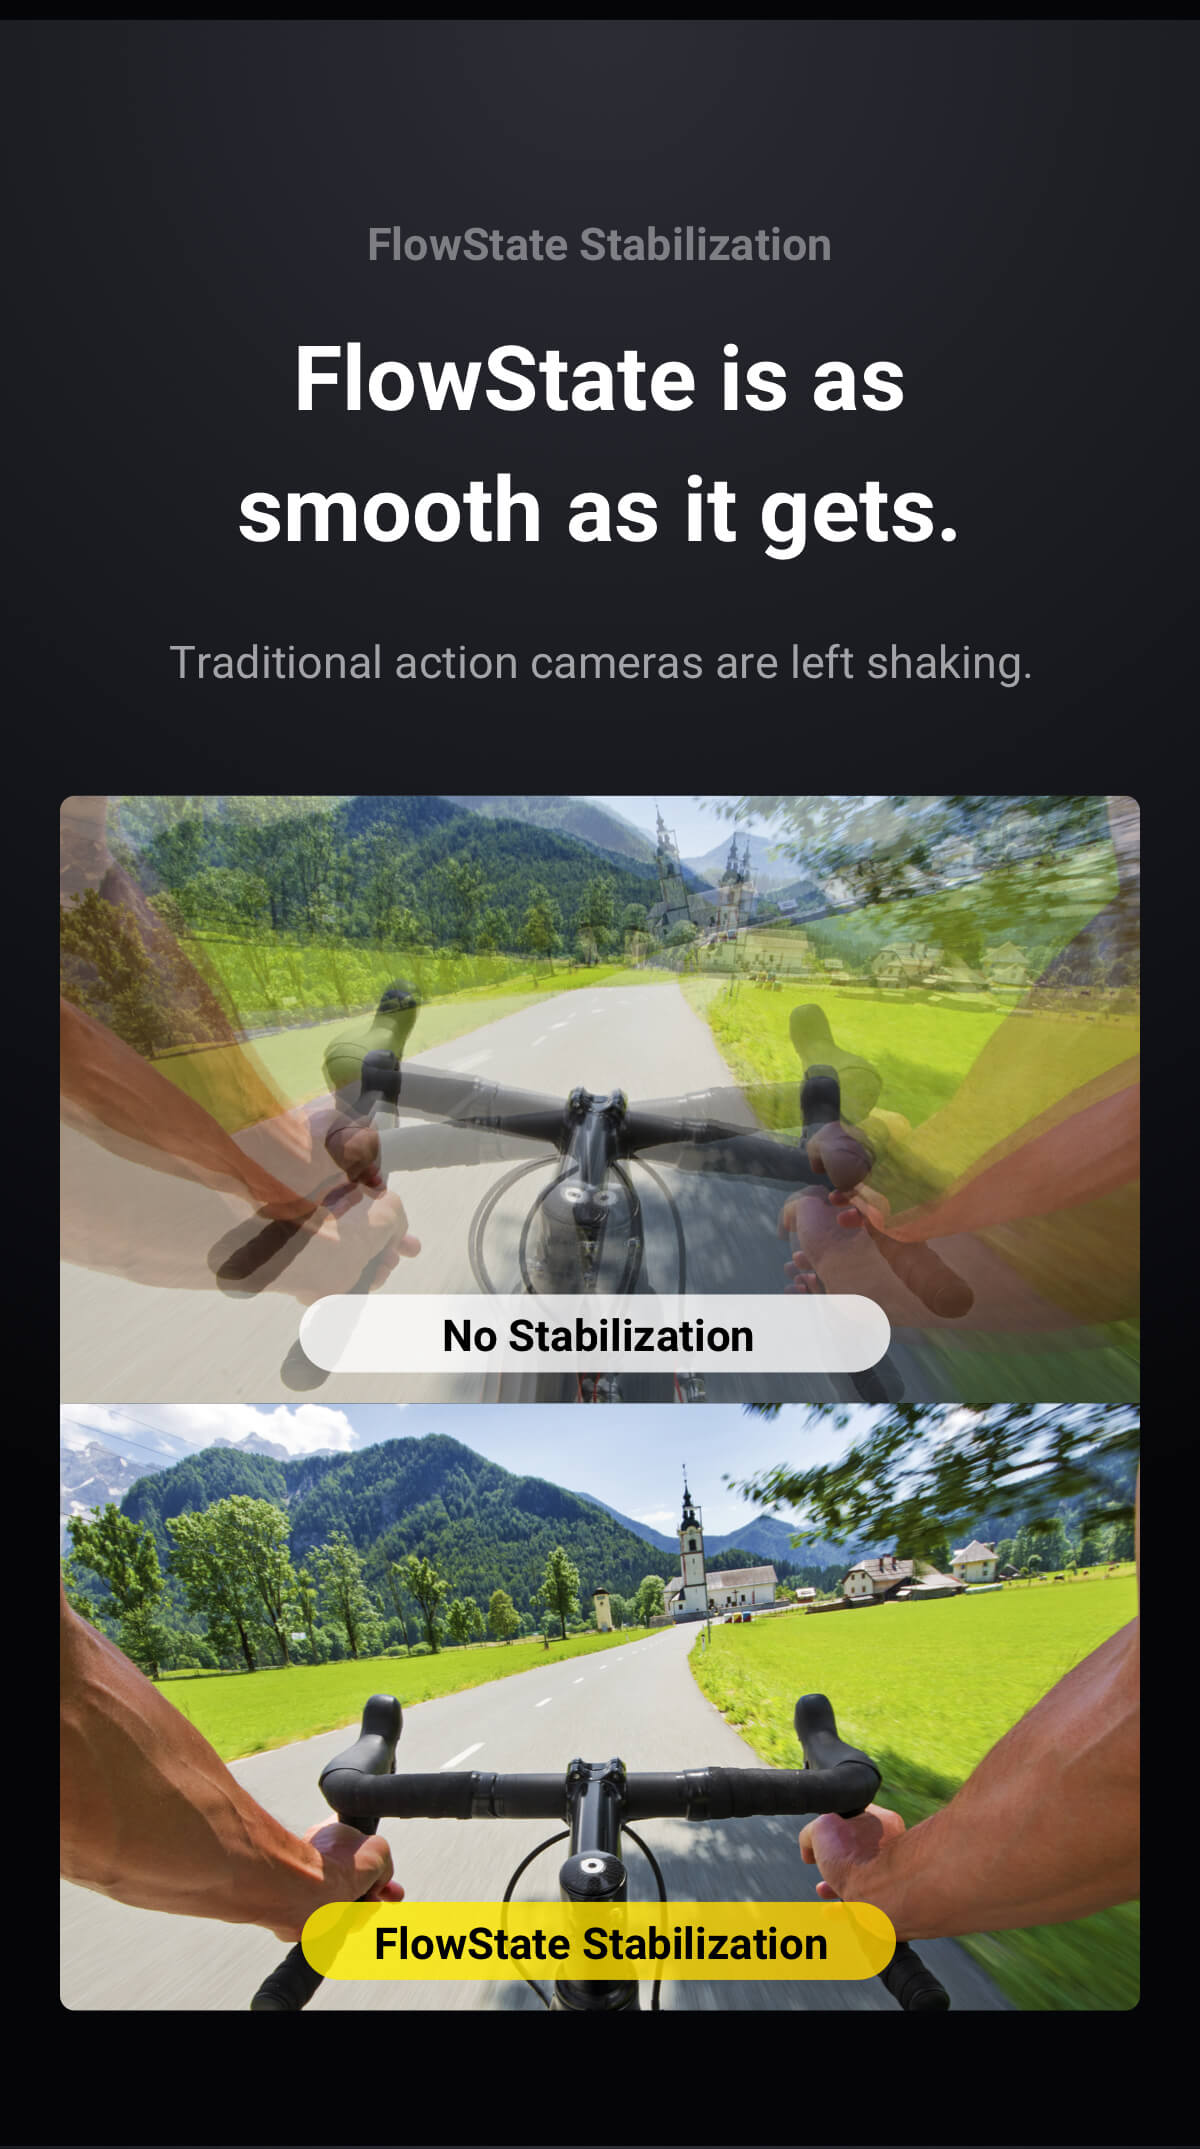 Insta360 One X FlowState Stabilization